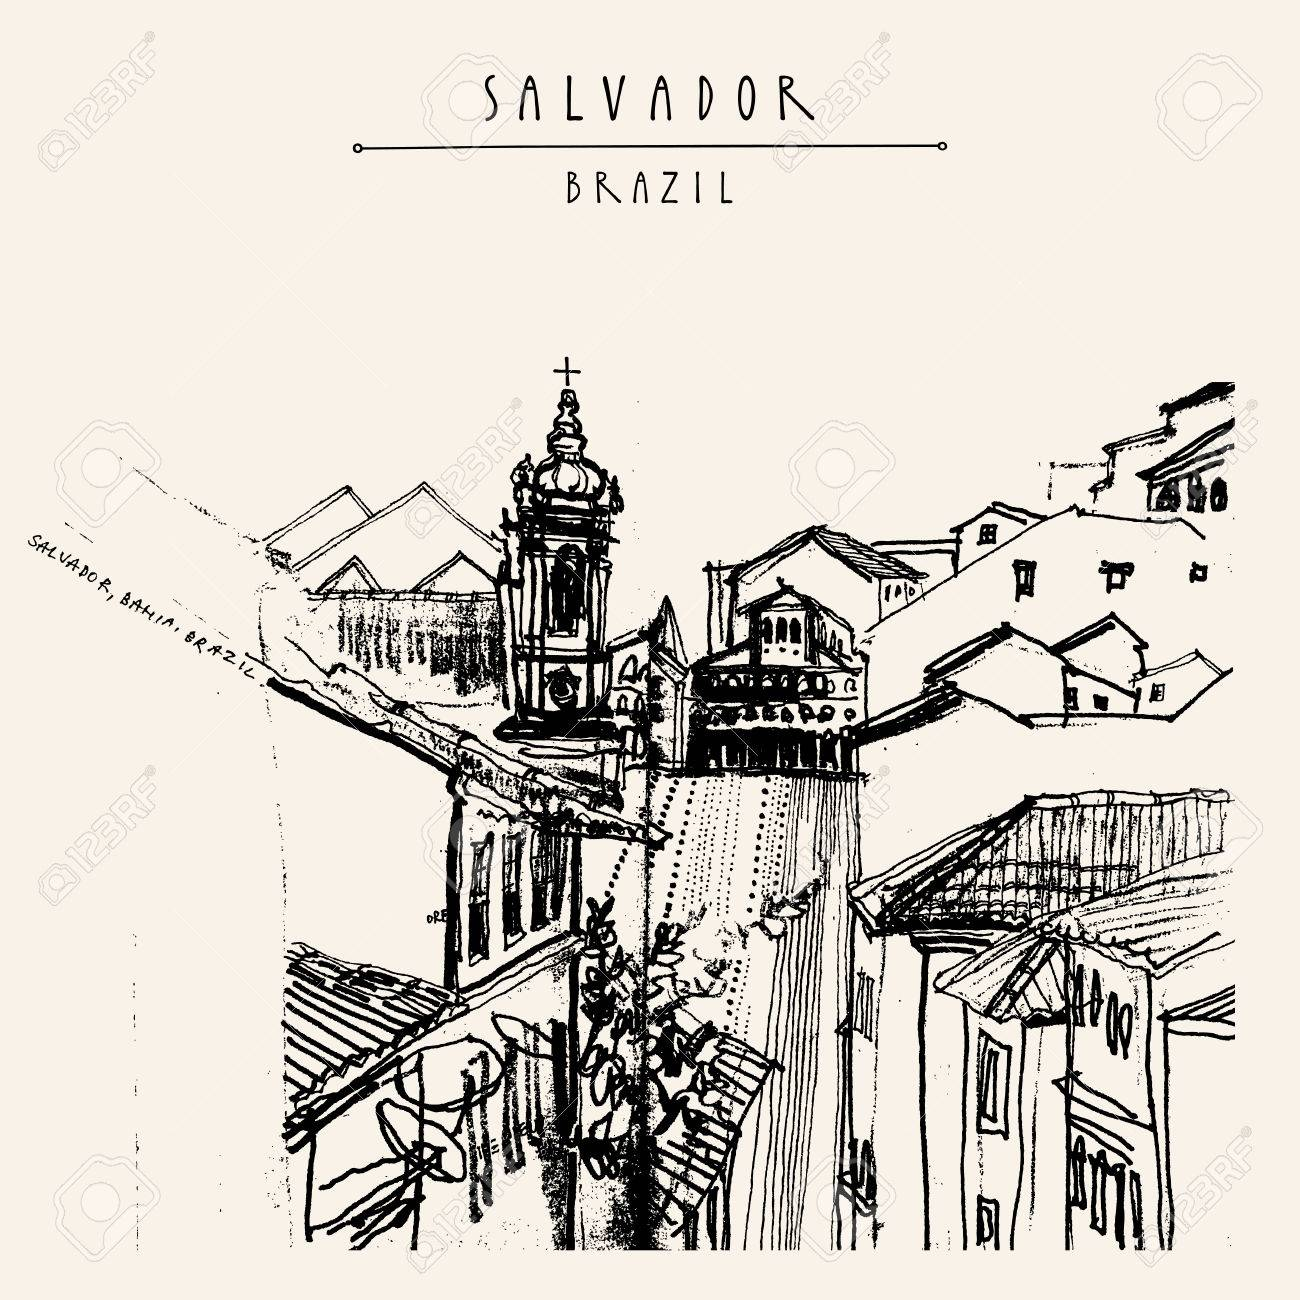 Old town in Salvador, Bahia, Brazil, South America. Houses and Catholic church on the hills of gorgeous town. Vintage hand drawn postcard, book illustration or poster template in vector - 64113982